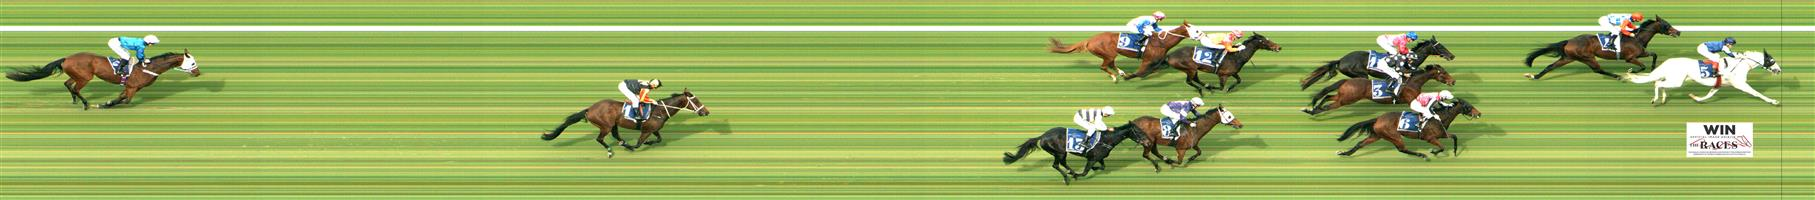 MORPHETTVILLE Race 3 No. 3 Chequered Flag @ $16 - watch price  Result: Non Qualifier - 4th at SP $21.00  MORPHETTVILLE Race 3 No. 4 Sopressa @ $10 - watch price  Result: Non Qualifier - 2nd at SP $14.00.  MORPHETTVILLE Race 3 No. 12 Cedar Grande @ $15 - watch price  Result: Non Qualifier - Unplaced at SP $20.00.  MORPHETTVILLE Race 3 No. 13 Future Score @ $5 (1.25 UNITS WIN)  Result: Non Qualifier - Unplaced at SP $8.50     IMAGE NOT AVAILABLE   DOOMBEN Race 8 No. 12 Kenedna @ $9 - watch price  Result: Non Qualifier - 1st at SP $10.00, Best Tote $11.40, Betfair $12.06.